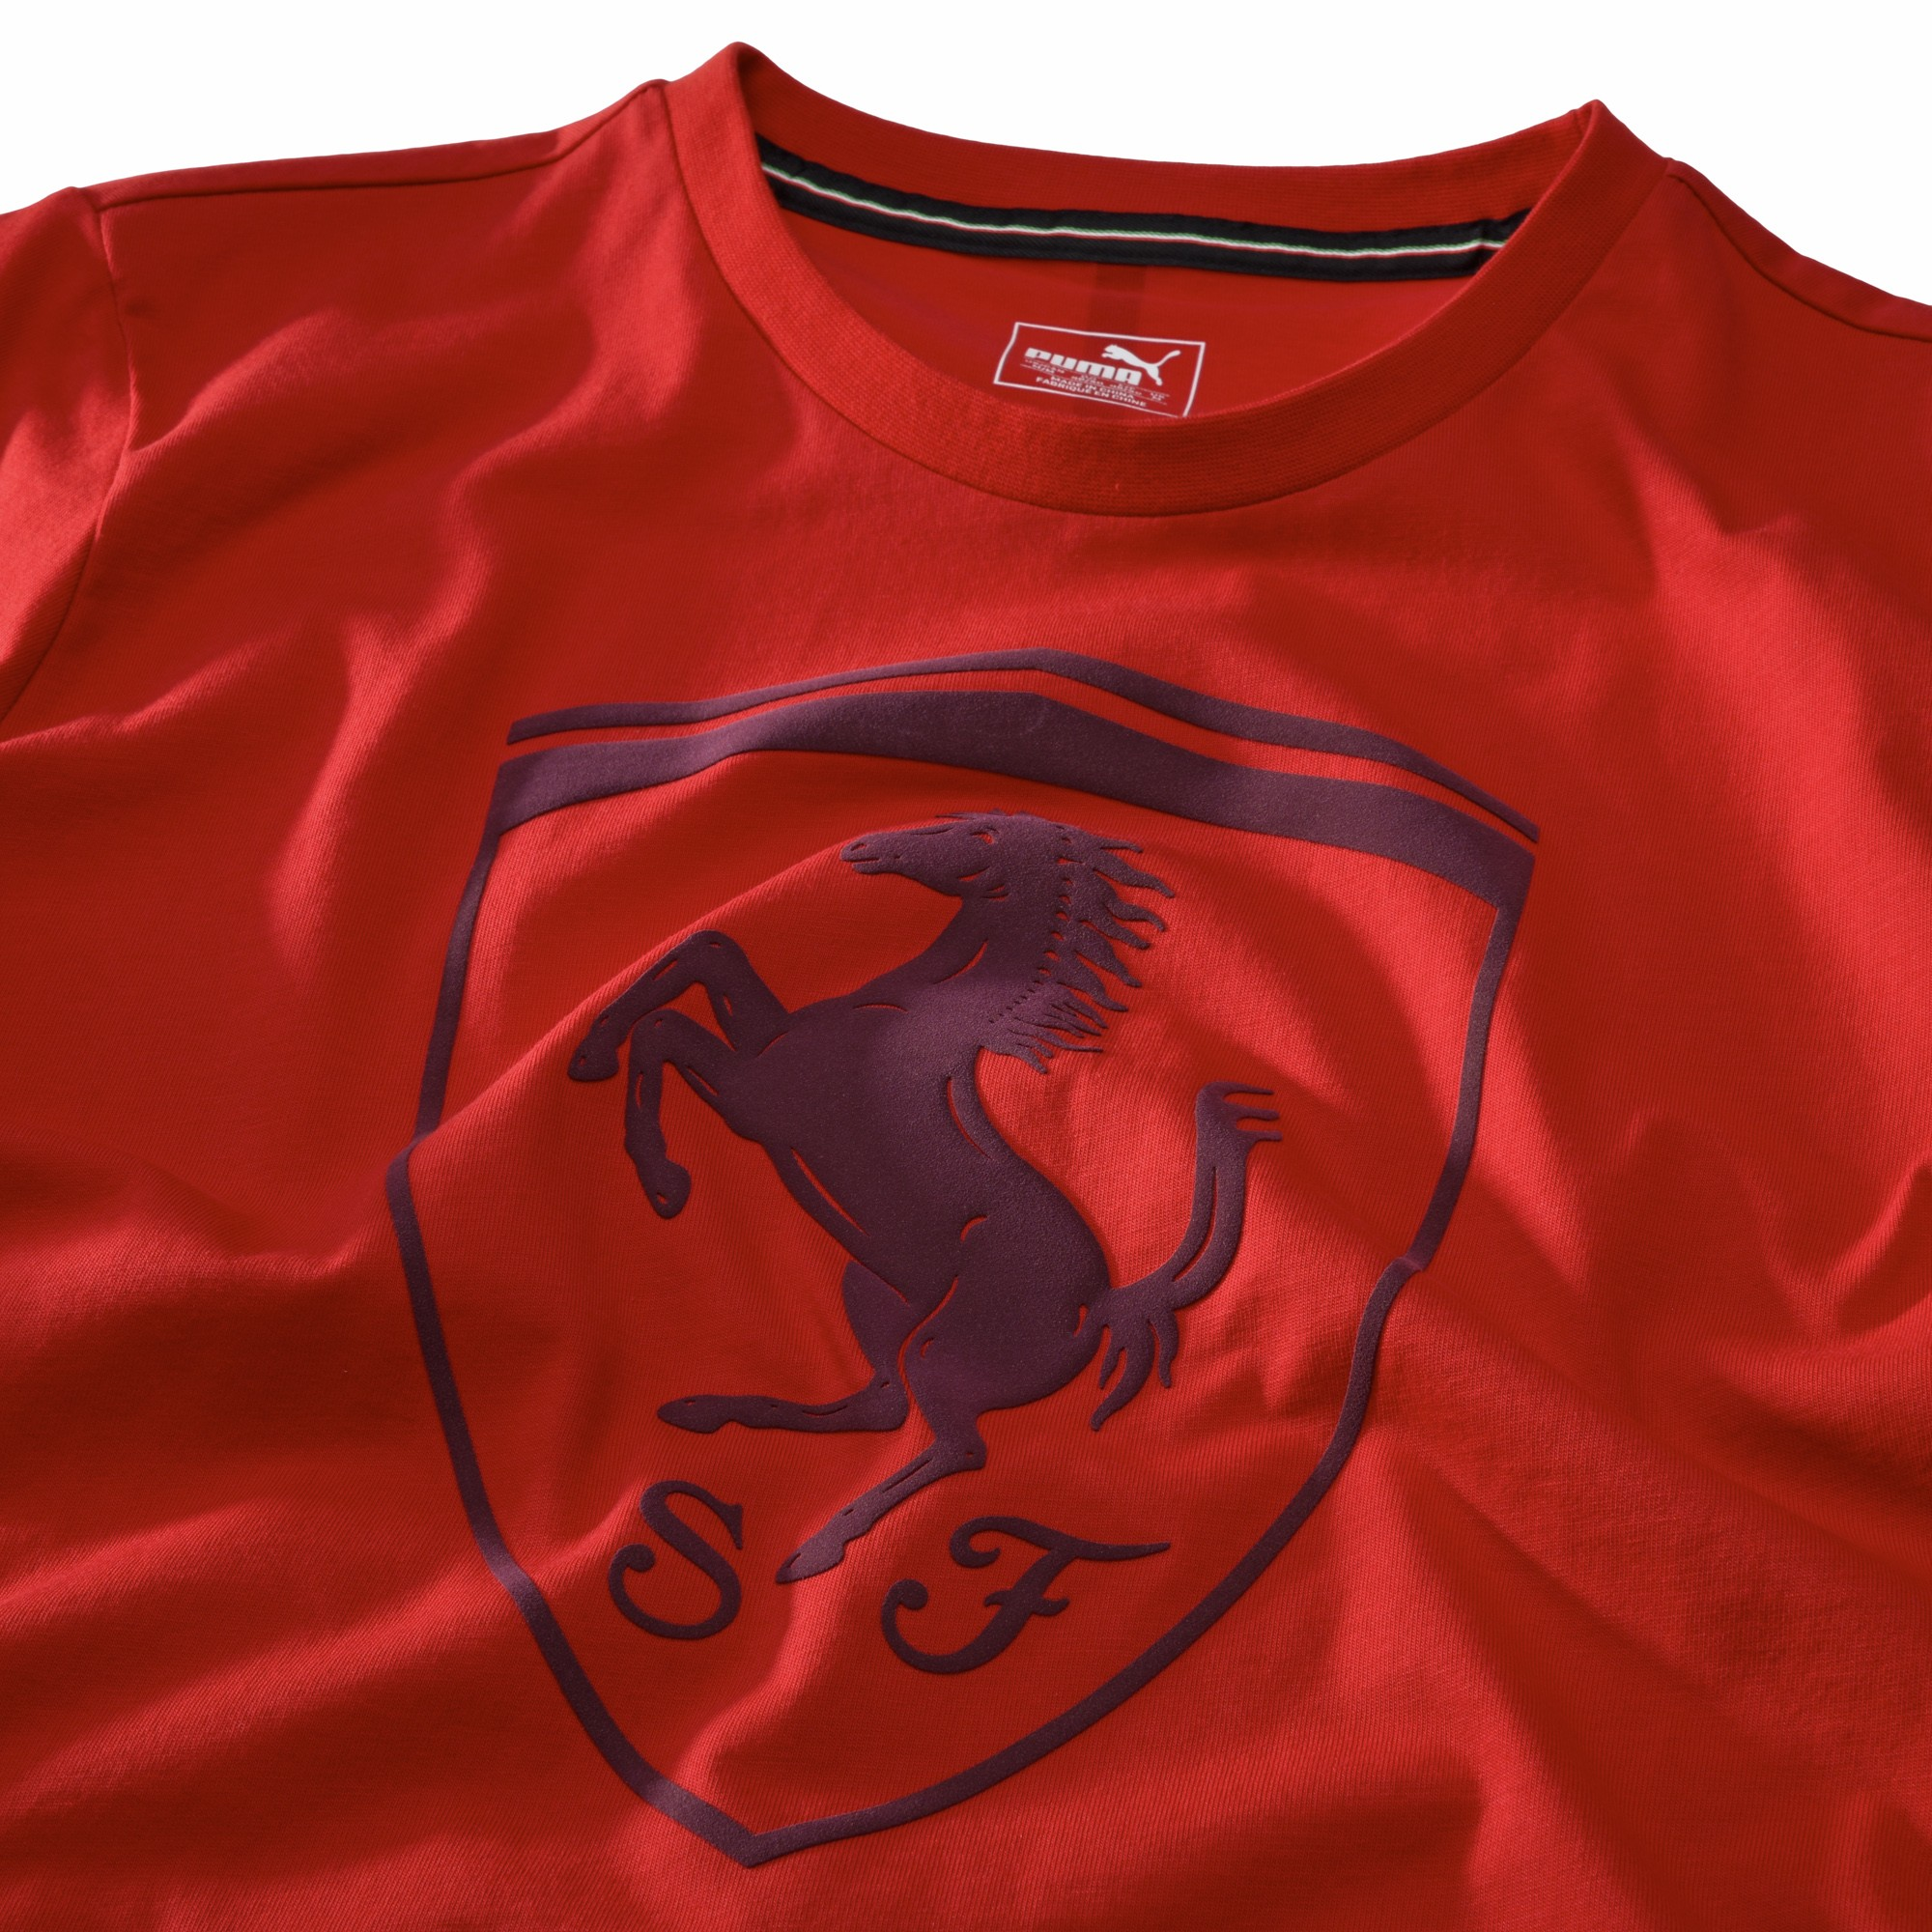 shirt z com graphic night product mens ferrari detail all t bibloo black moonless jersey puma